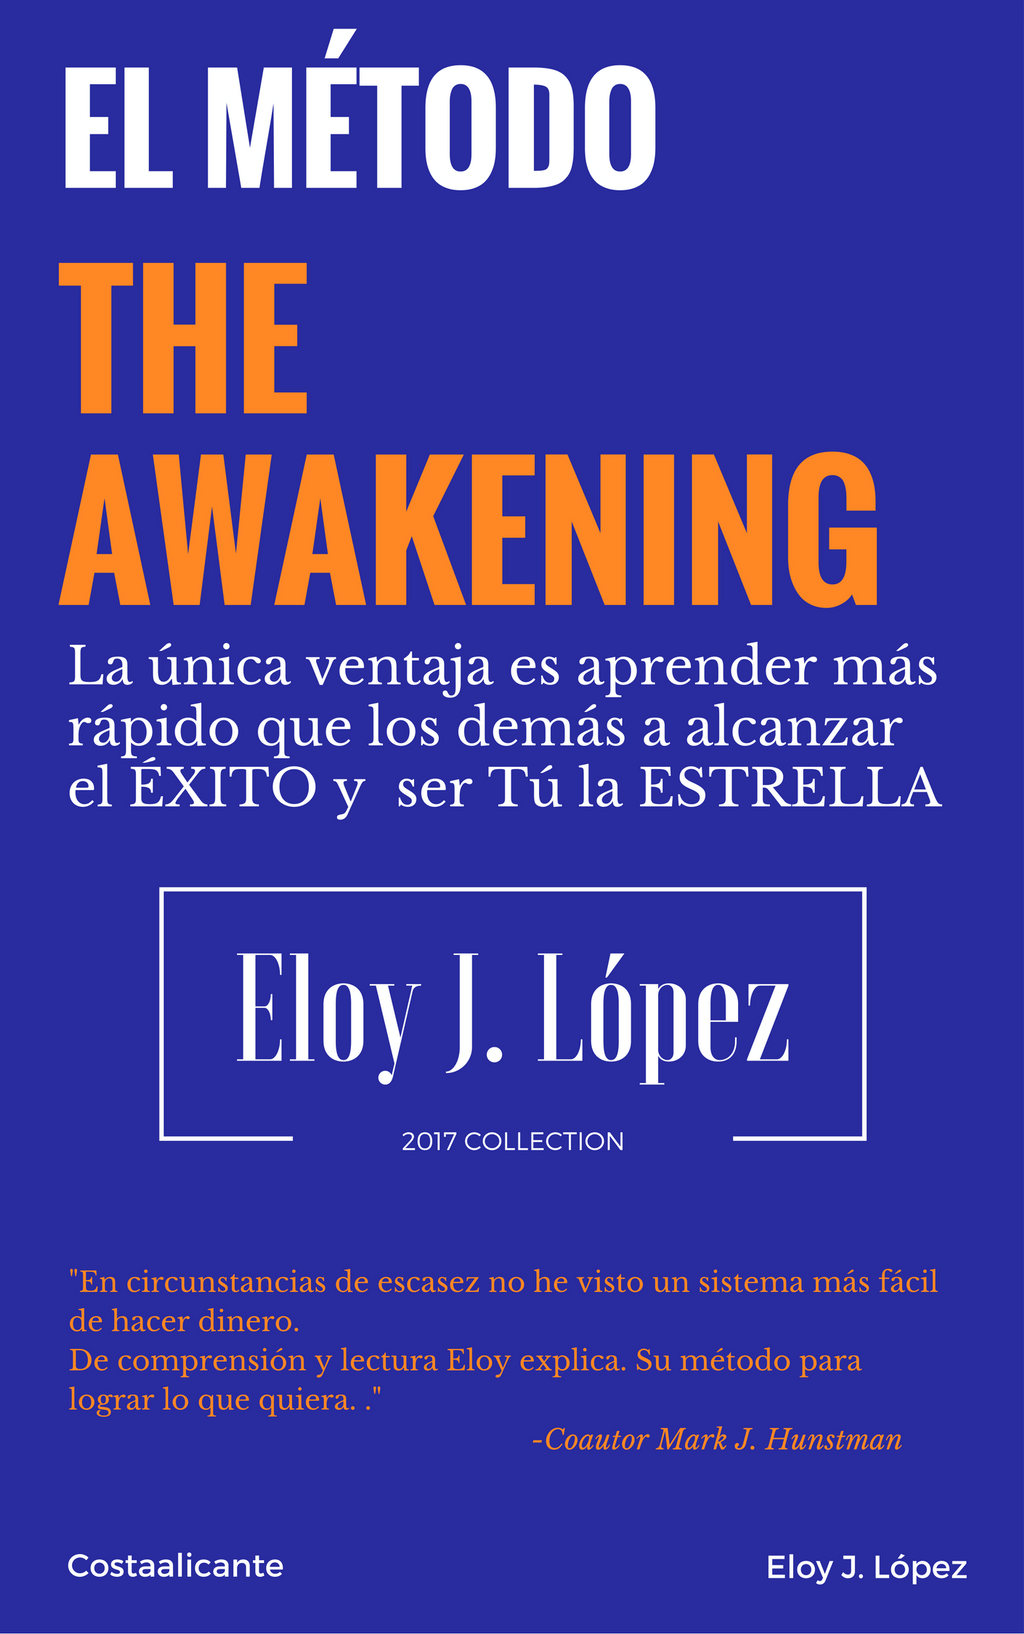 El Método THE AWAKENING